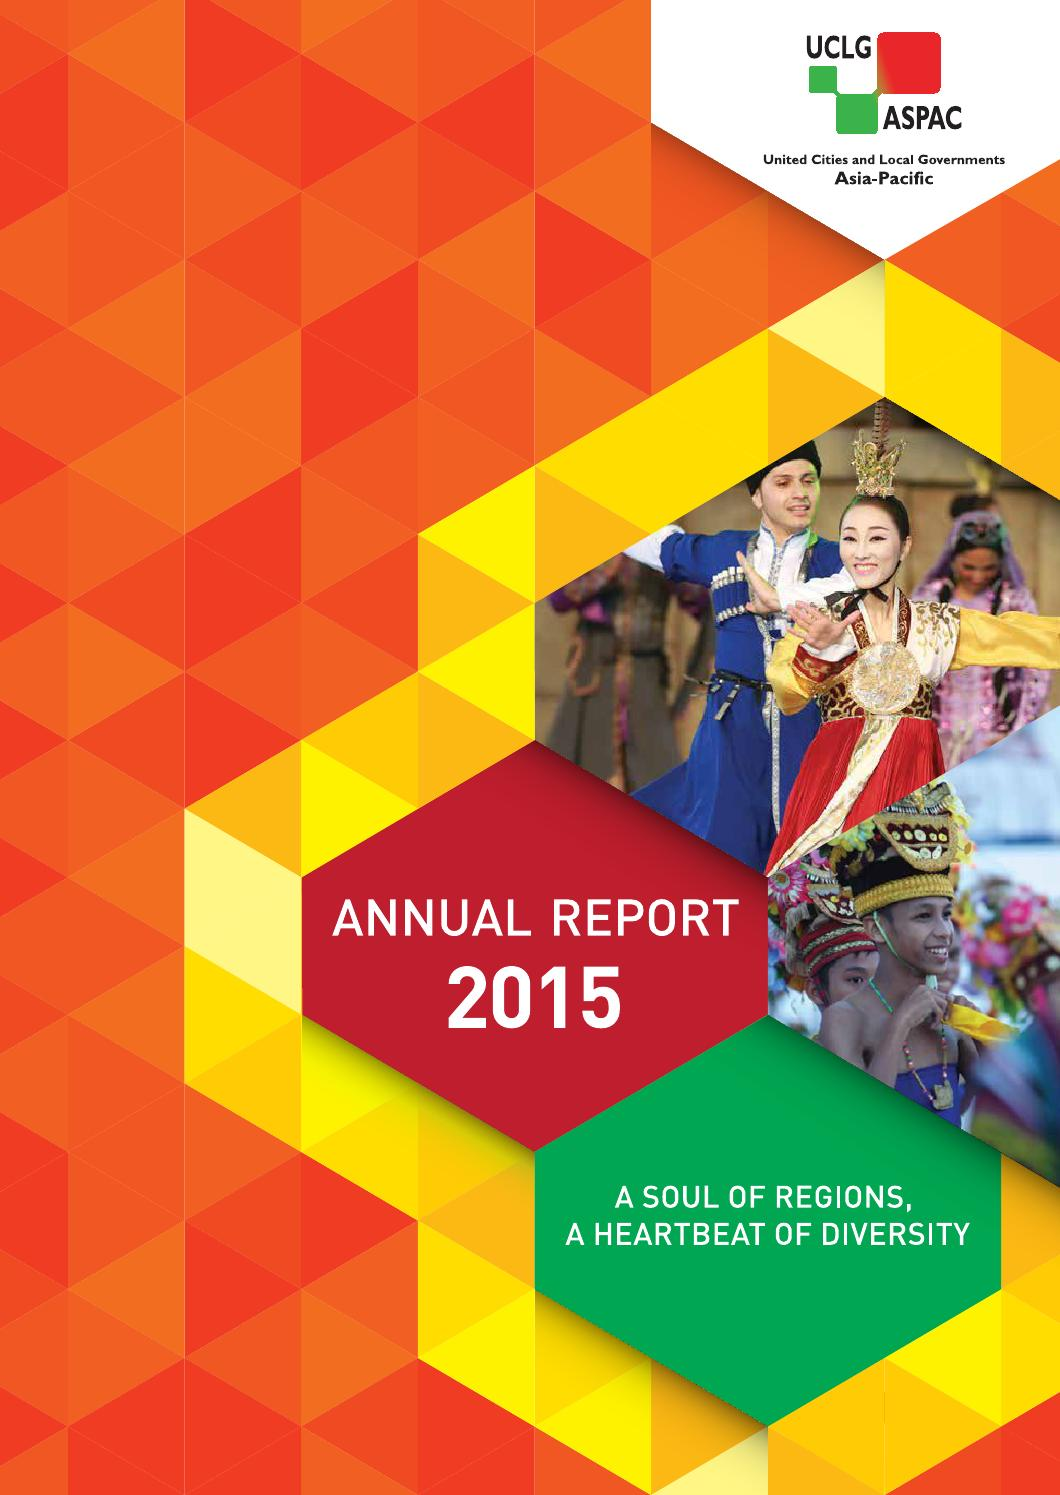 cover page design for annual report